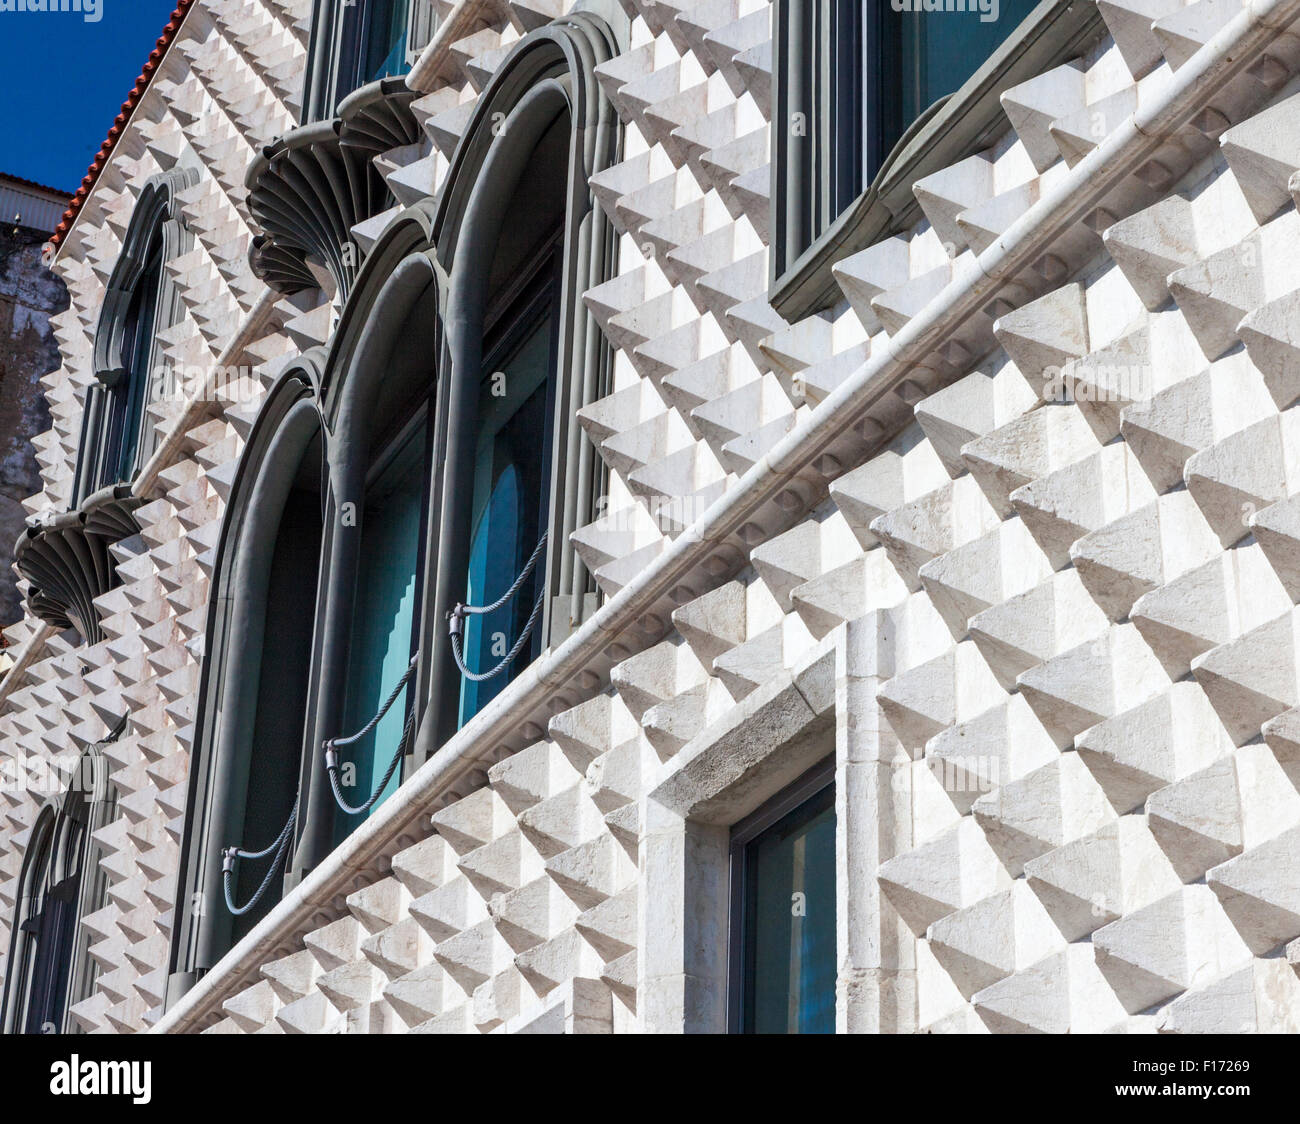 Facade of Casa dos Bicos (House of the Spikes) in the Alfama neighborhood of Lisbon Portugal - Stock Image